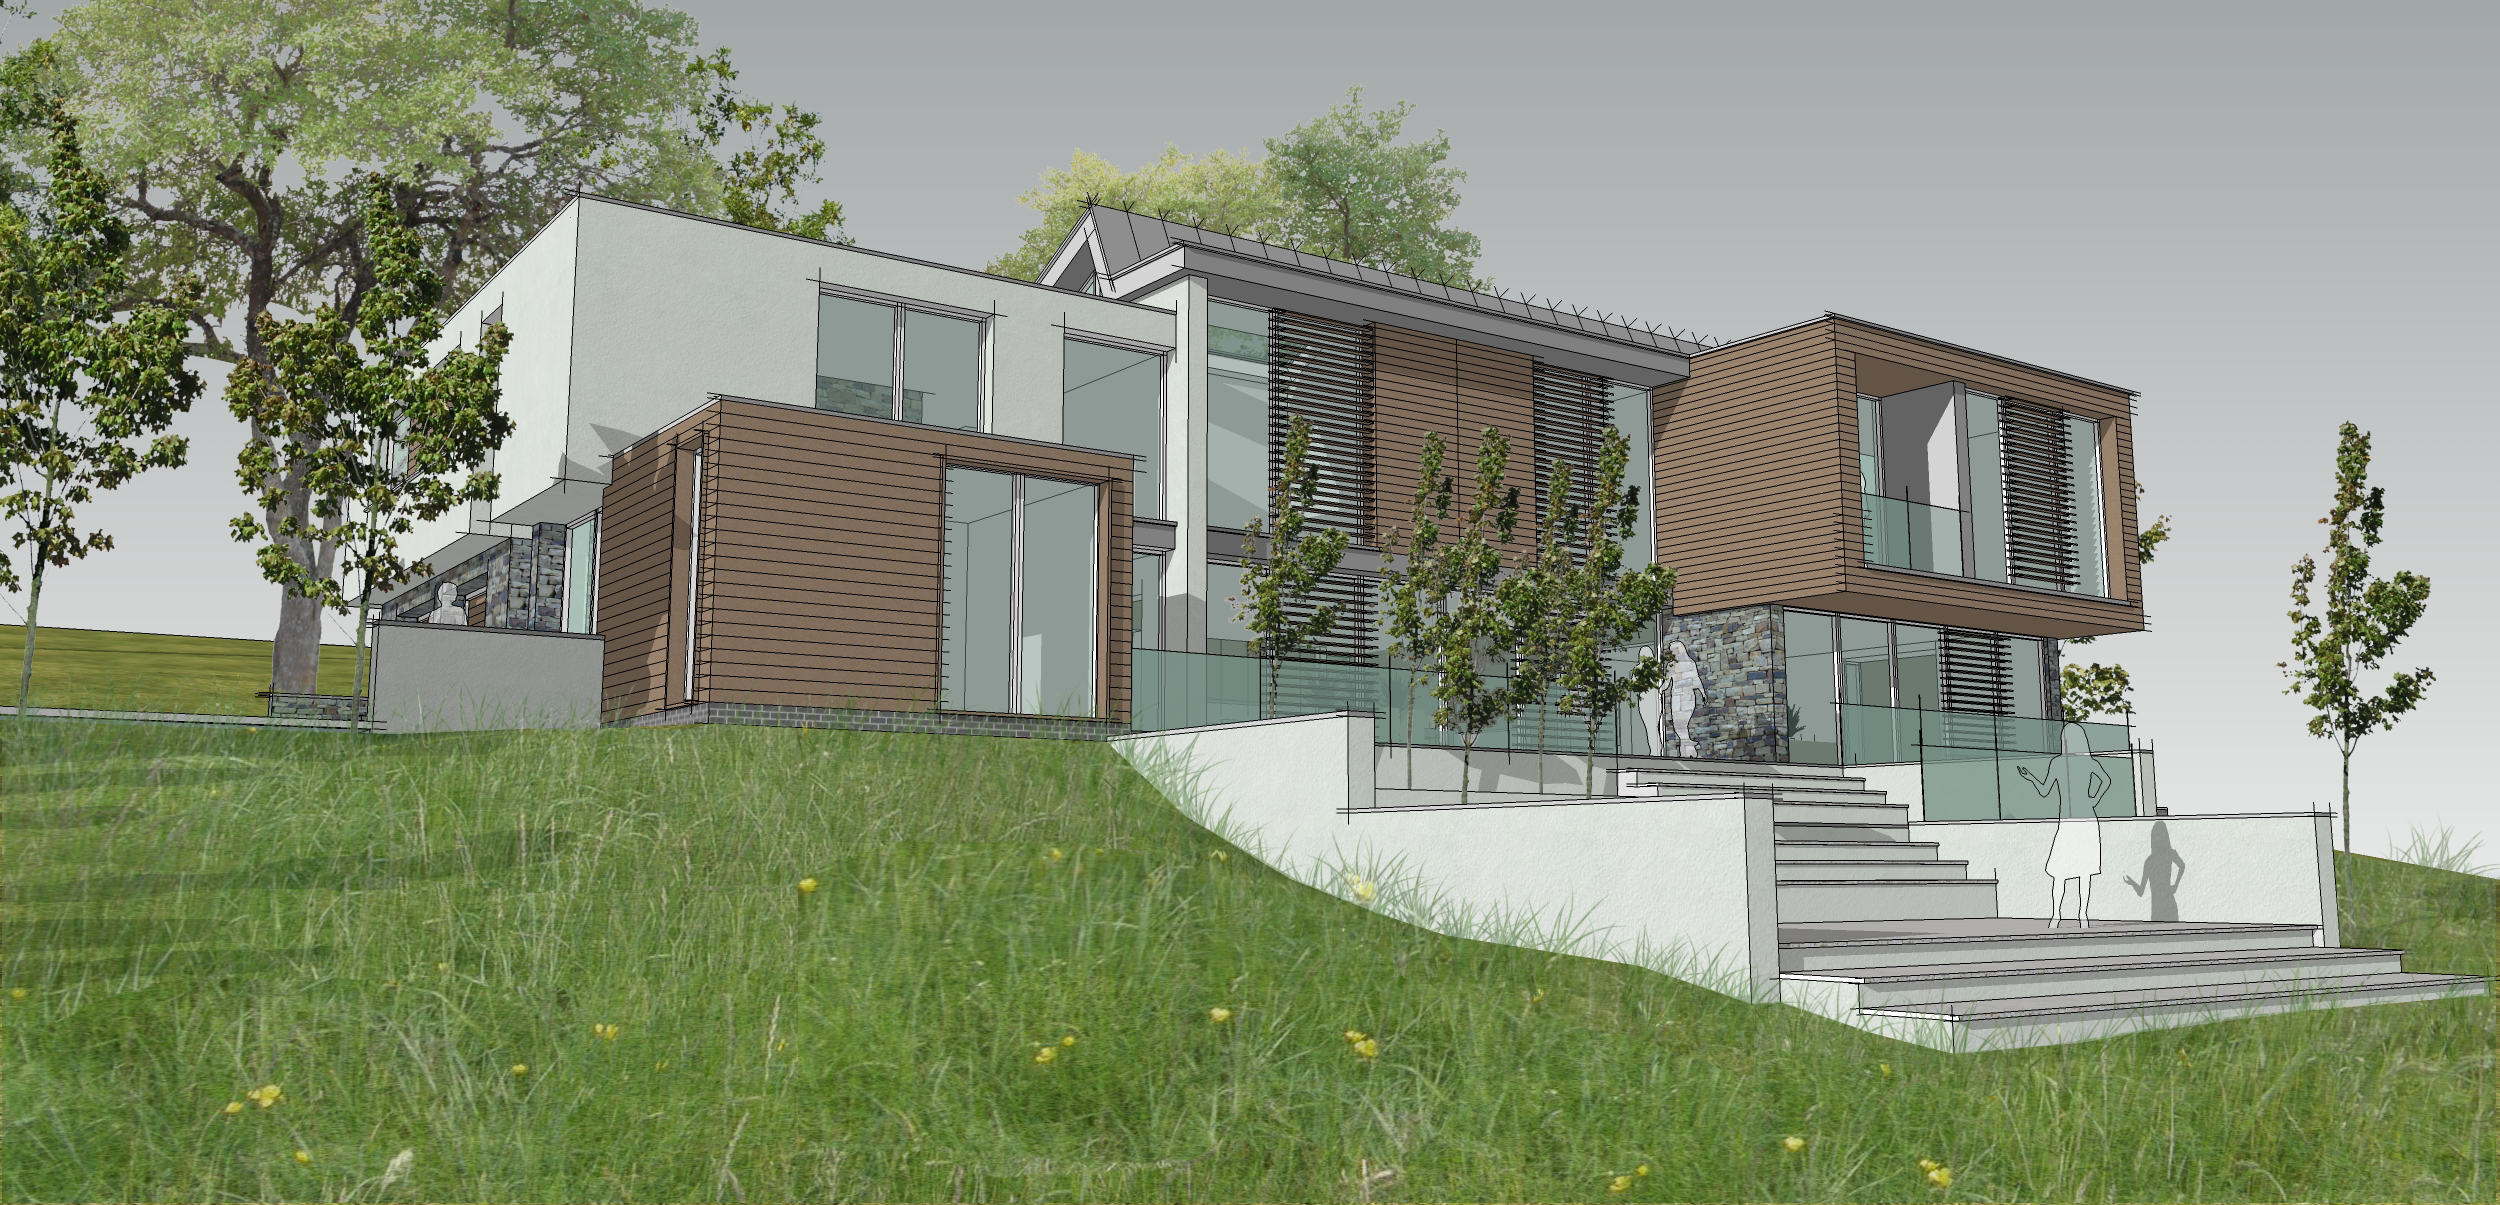 Contemporary house design progresses through feasibility stage leaf architecture for Contemporary modern home designs